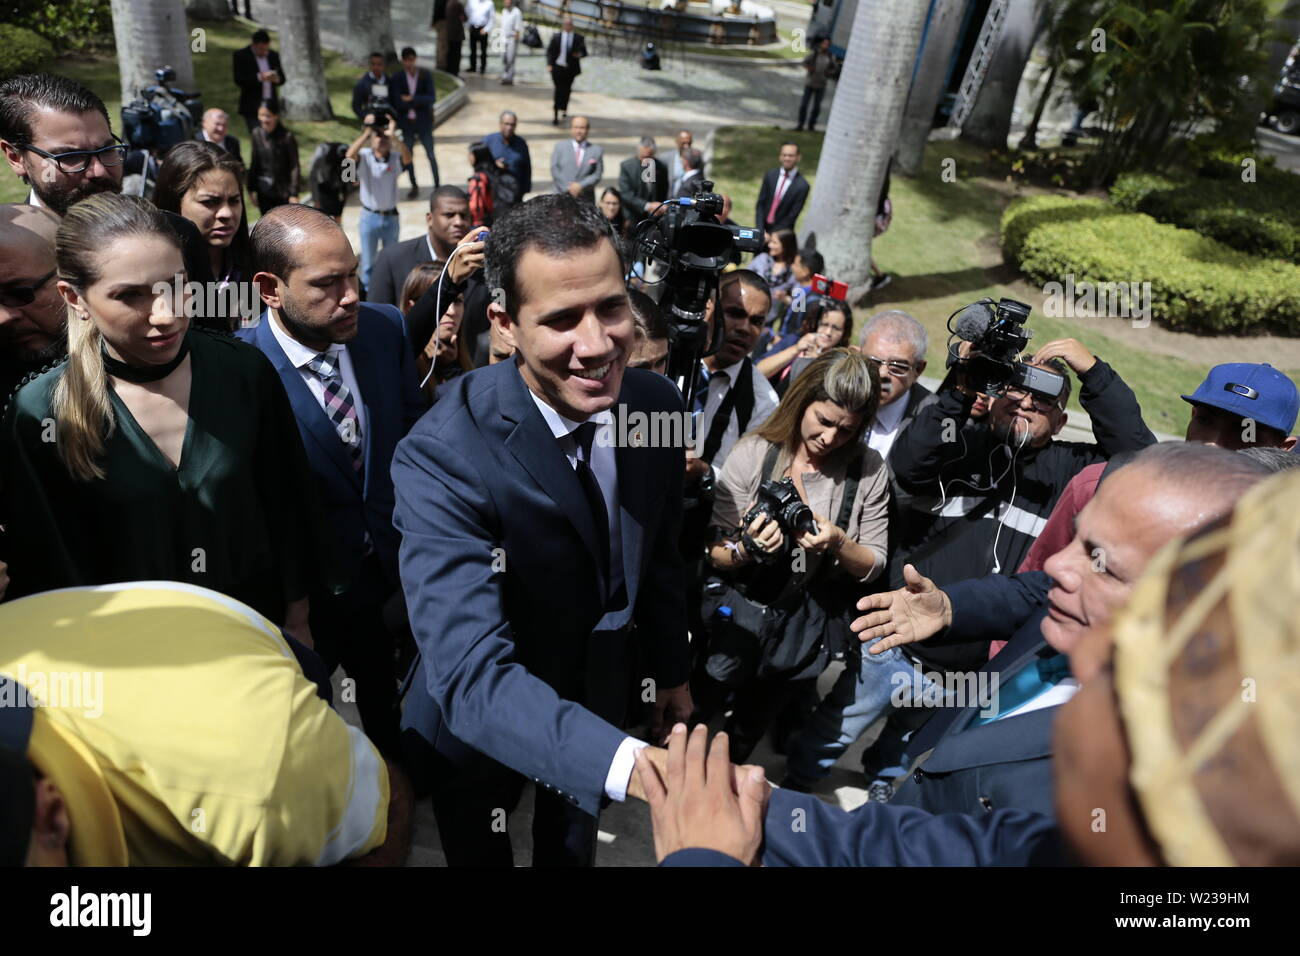 Caracas, Venezuela. 05th July, 2019. Juan Guaido, self-proclaimed interim president of Venezuela, greets supporters as he joins his wife Fabiana Rosales (l) for an Independence Day event at the National Assembly. Guaido has called on civil society to protest against the government of Head of State Maduro. Venezuela commemorates on July 5 the independence of Spain in 1811. Credit: Rafael Hernandez/dpa/Alamy Live News - Stock Image